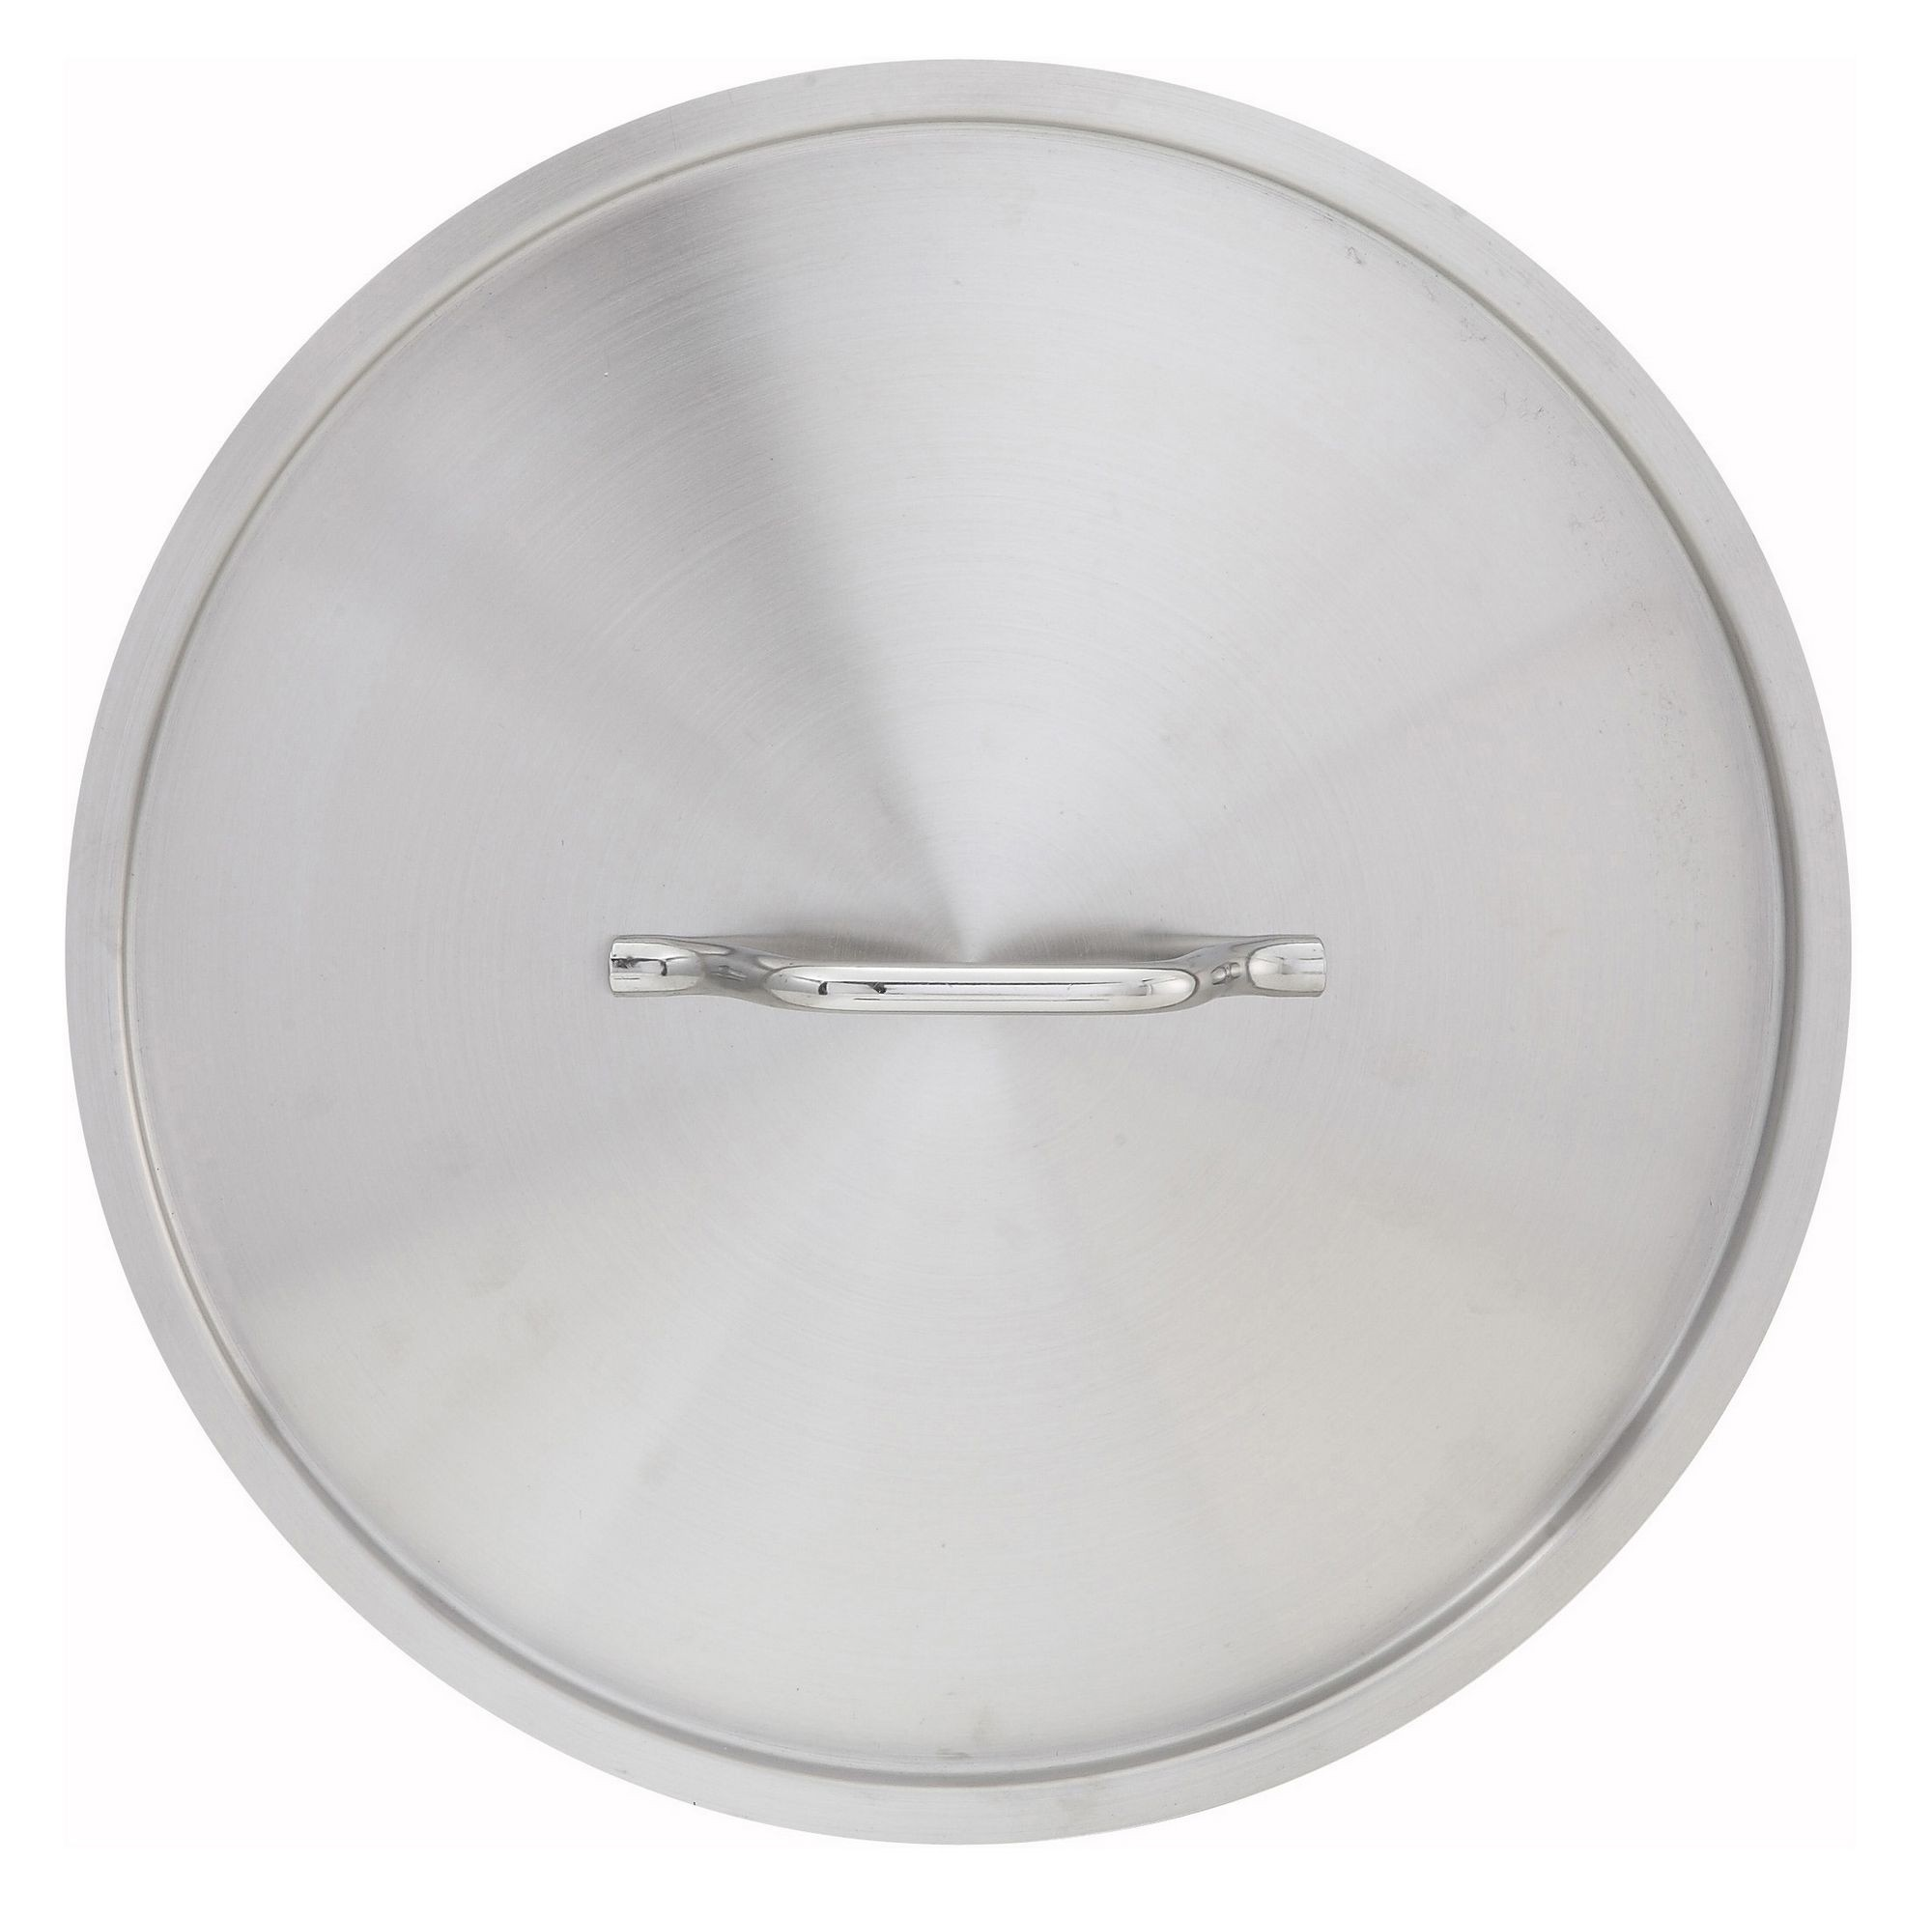 Stainless Steel Cover For 20-Qt Stock Pot (SST-20)